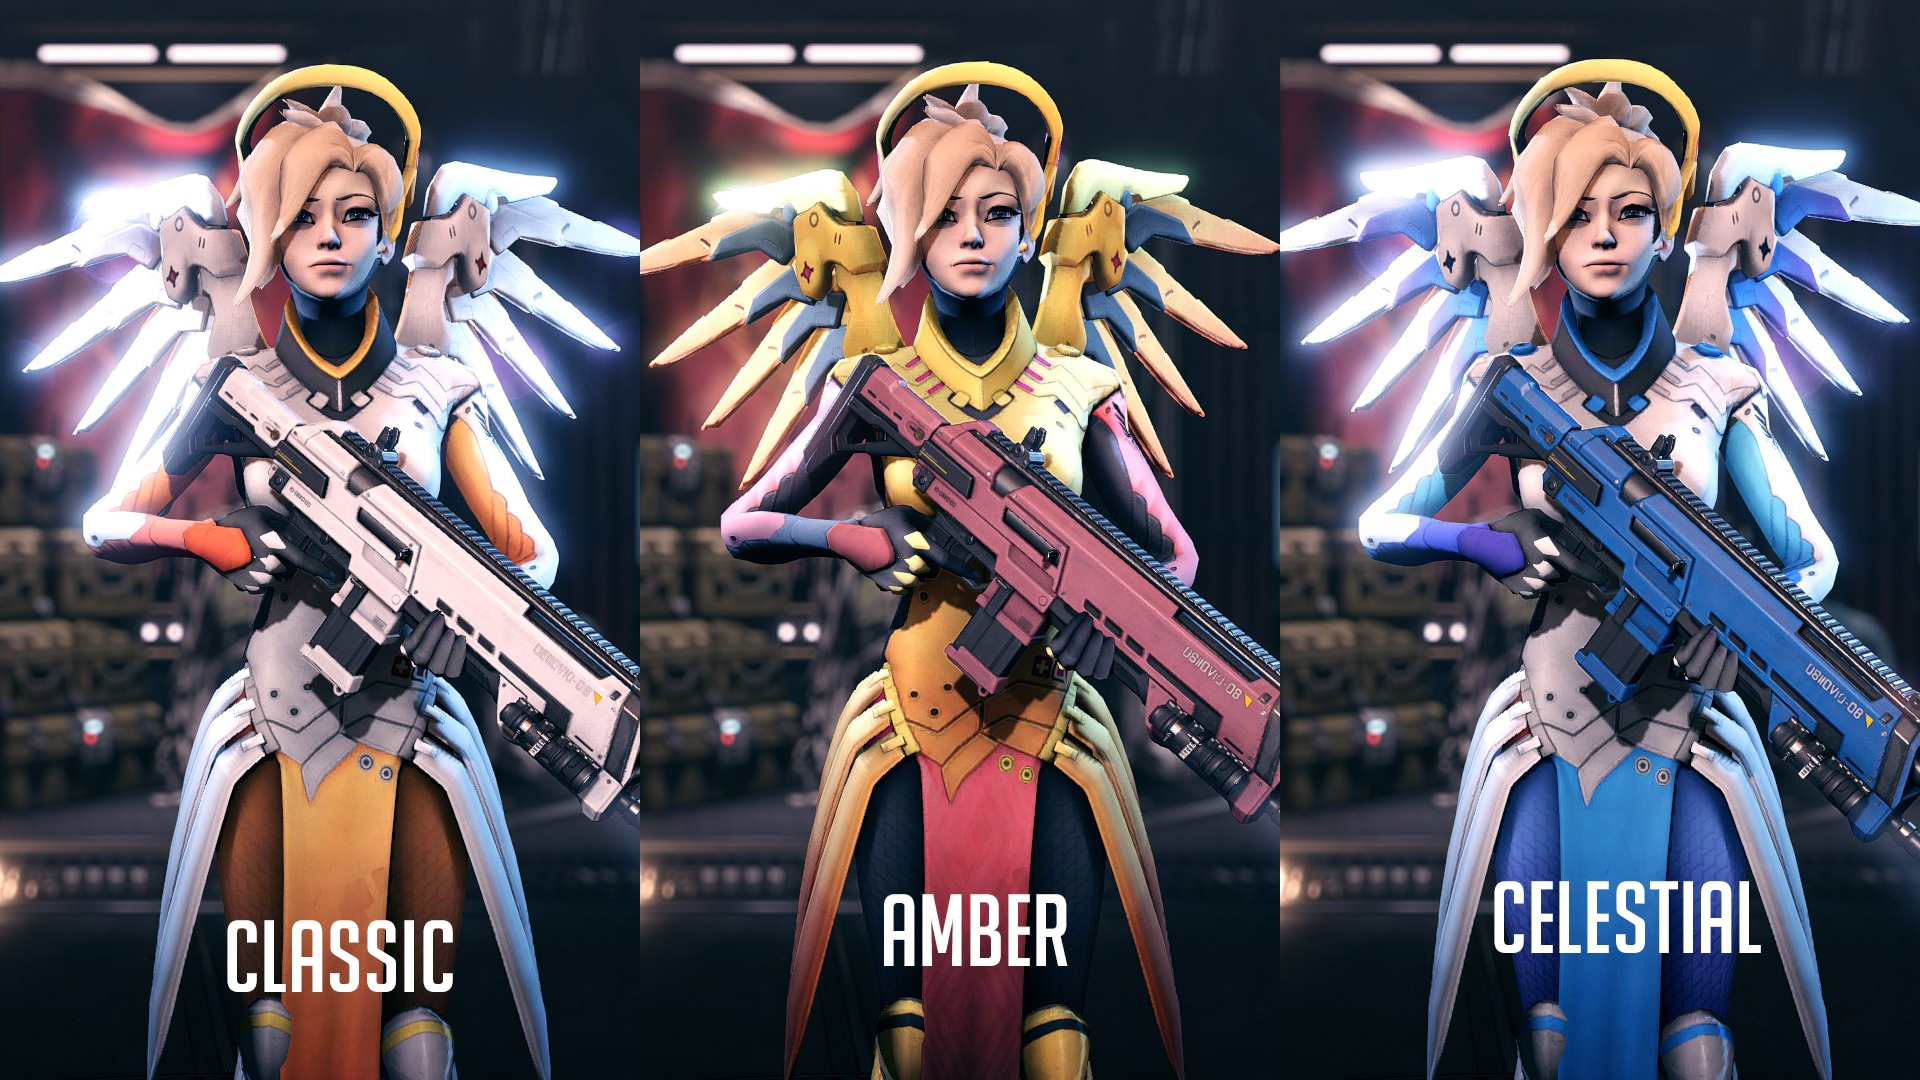 XCOM 2 War Of The Chosen Mod Brings Overwatchs Lifesaver Mercy Into The Fight VG247